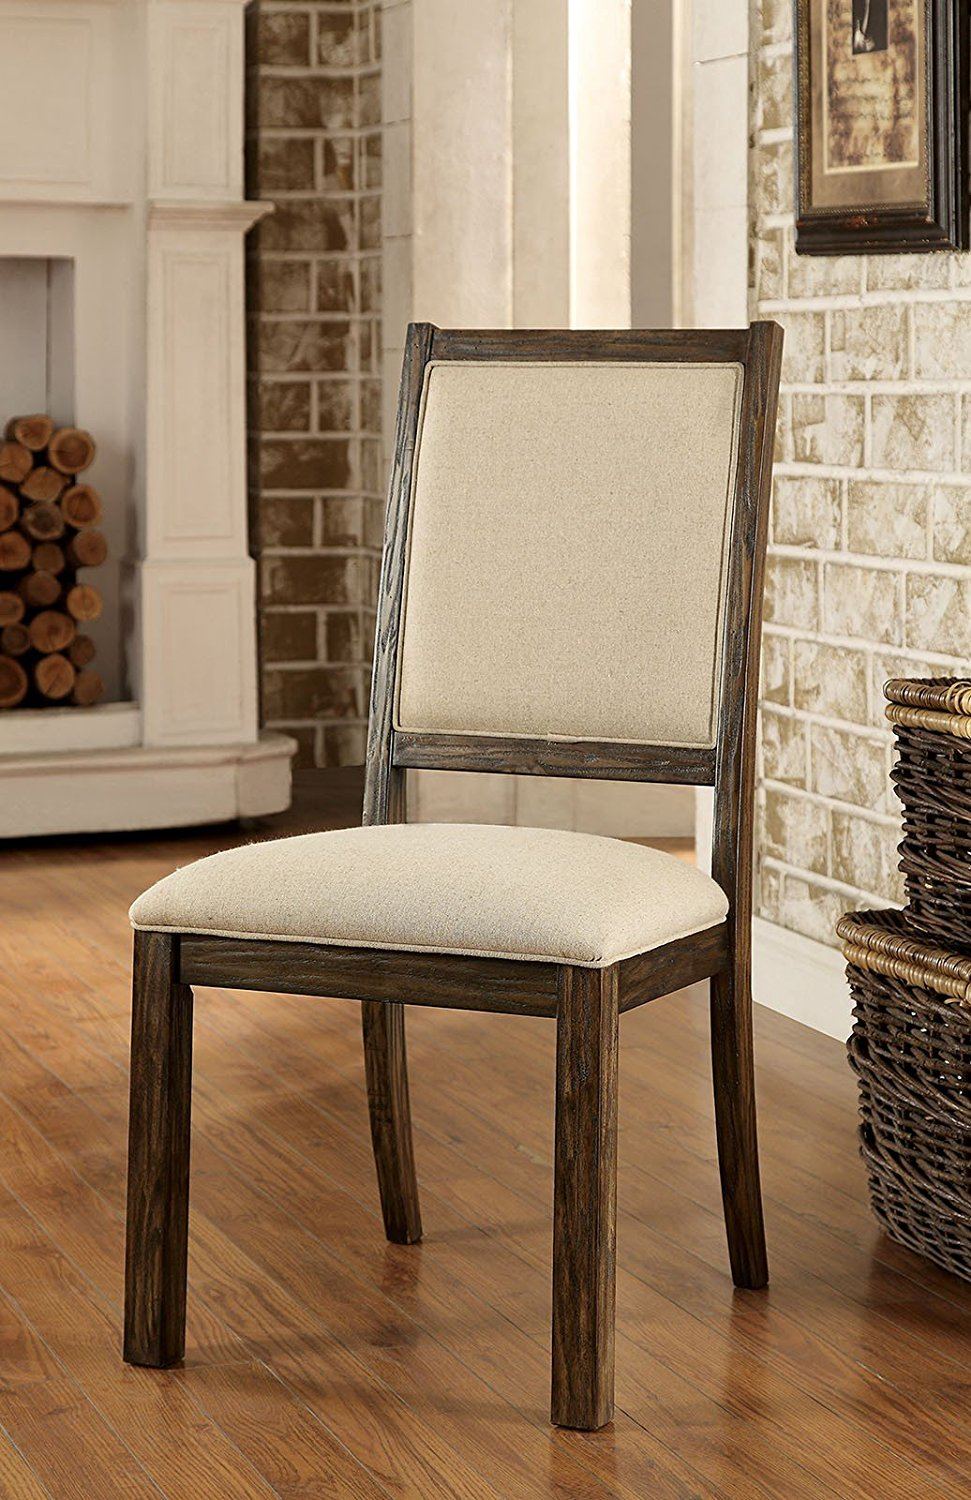 Simple Relax 1PerfectChoice Colettte Set of 2 Dining Side Chair Rustic Wood Frame Comfort Padded Fabric Seat